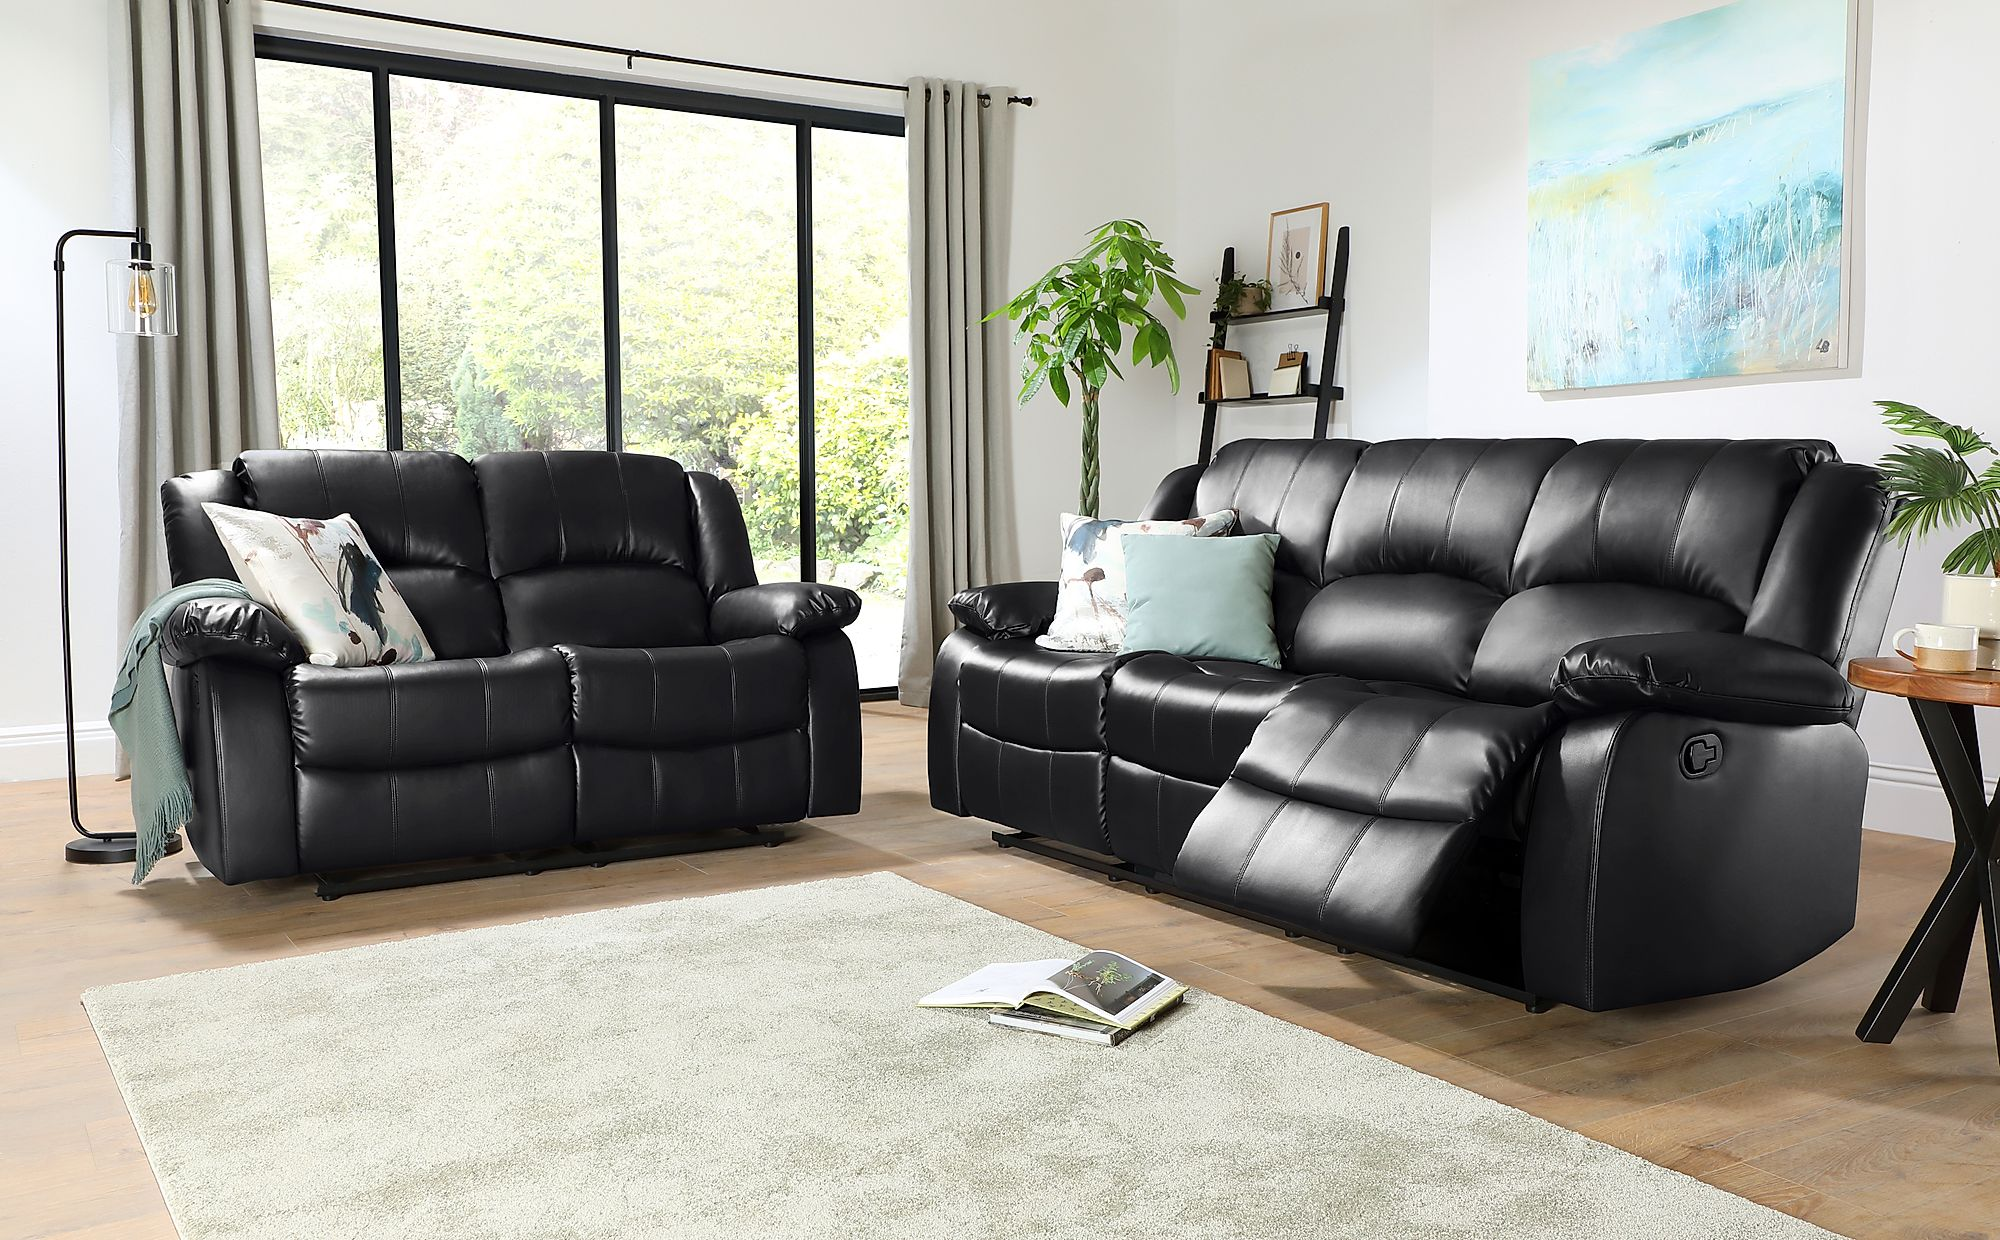 Dakota Leather Recliner Sofa Suite 3 2 Seater Black Only 899 98